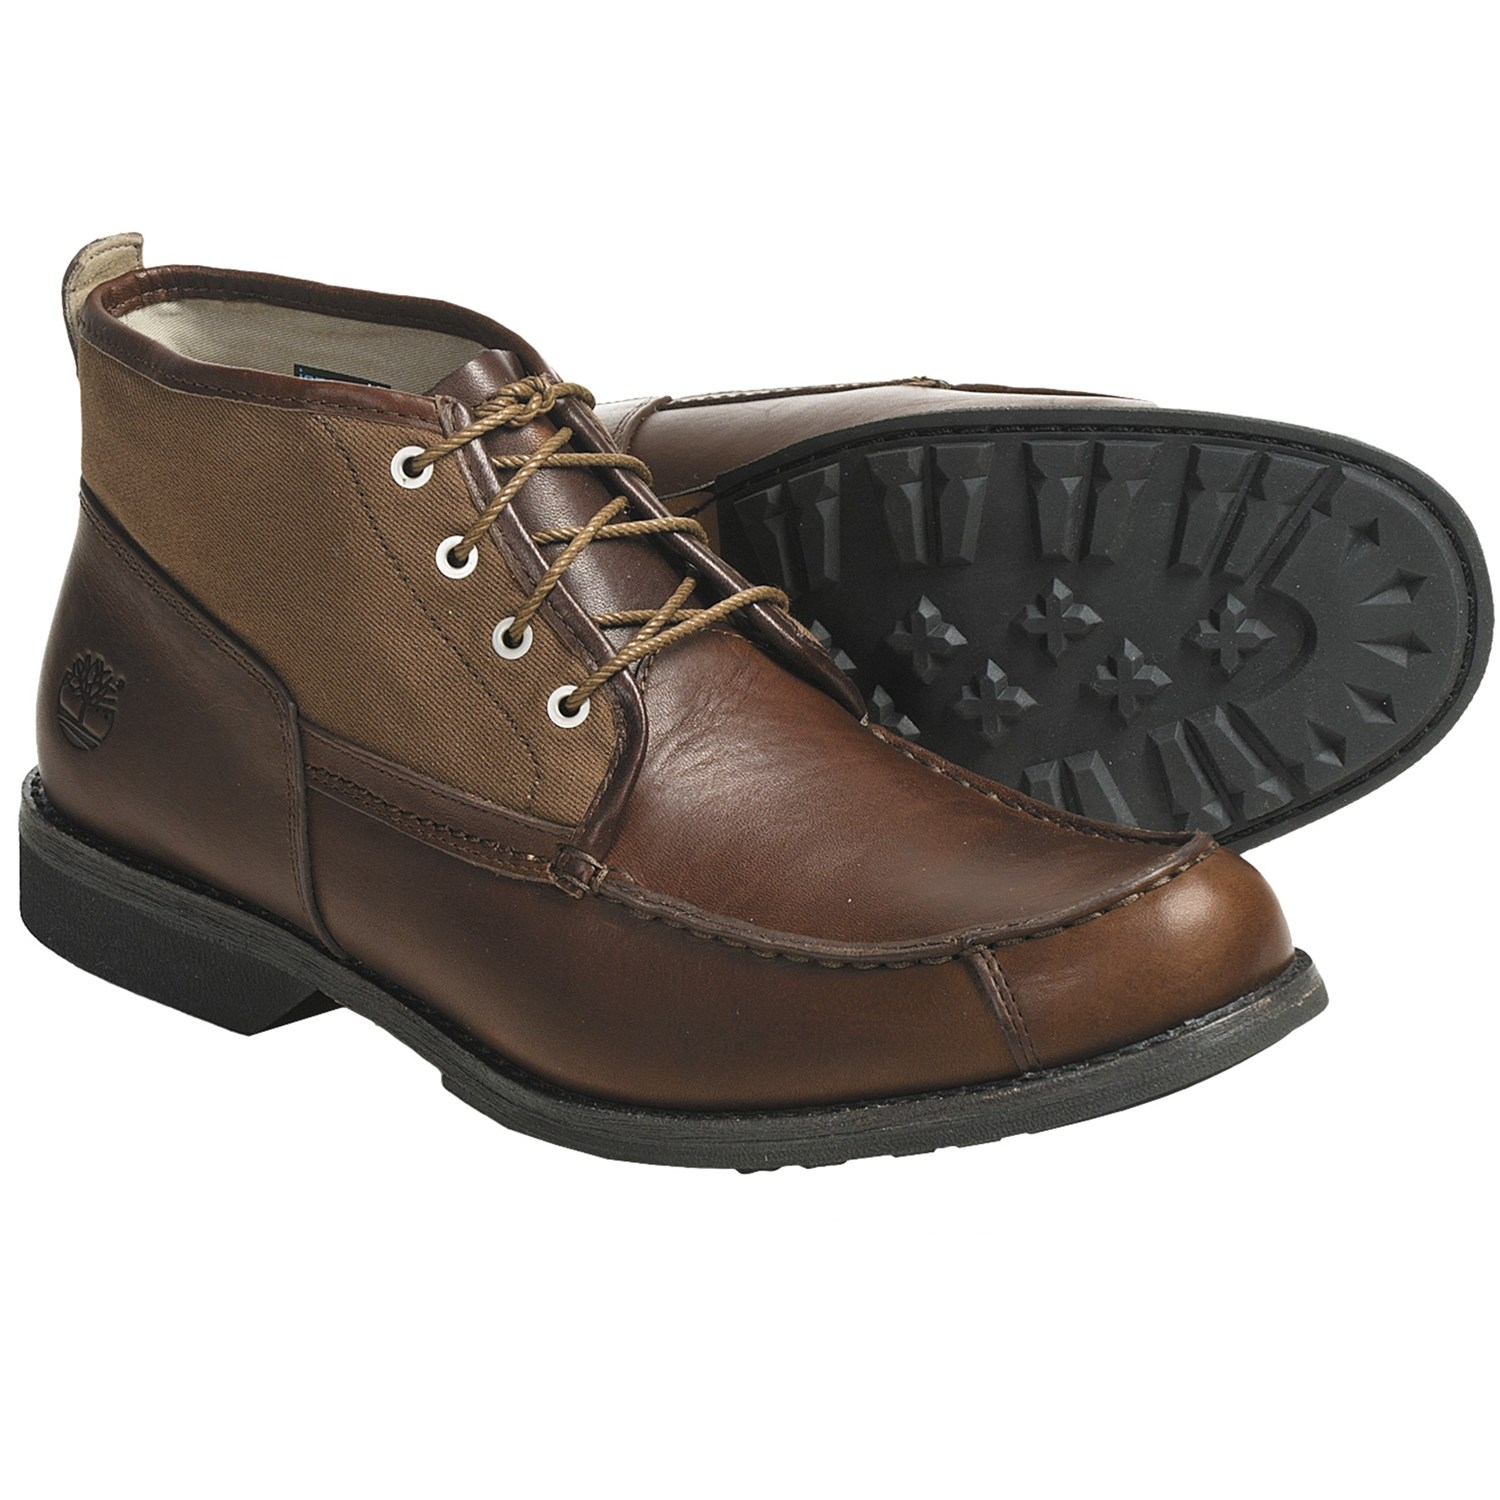 Timberland Boots For Men 2012 timberland-eart...